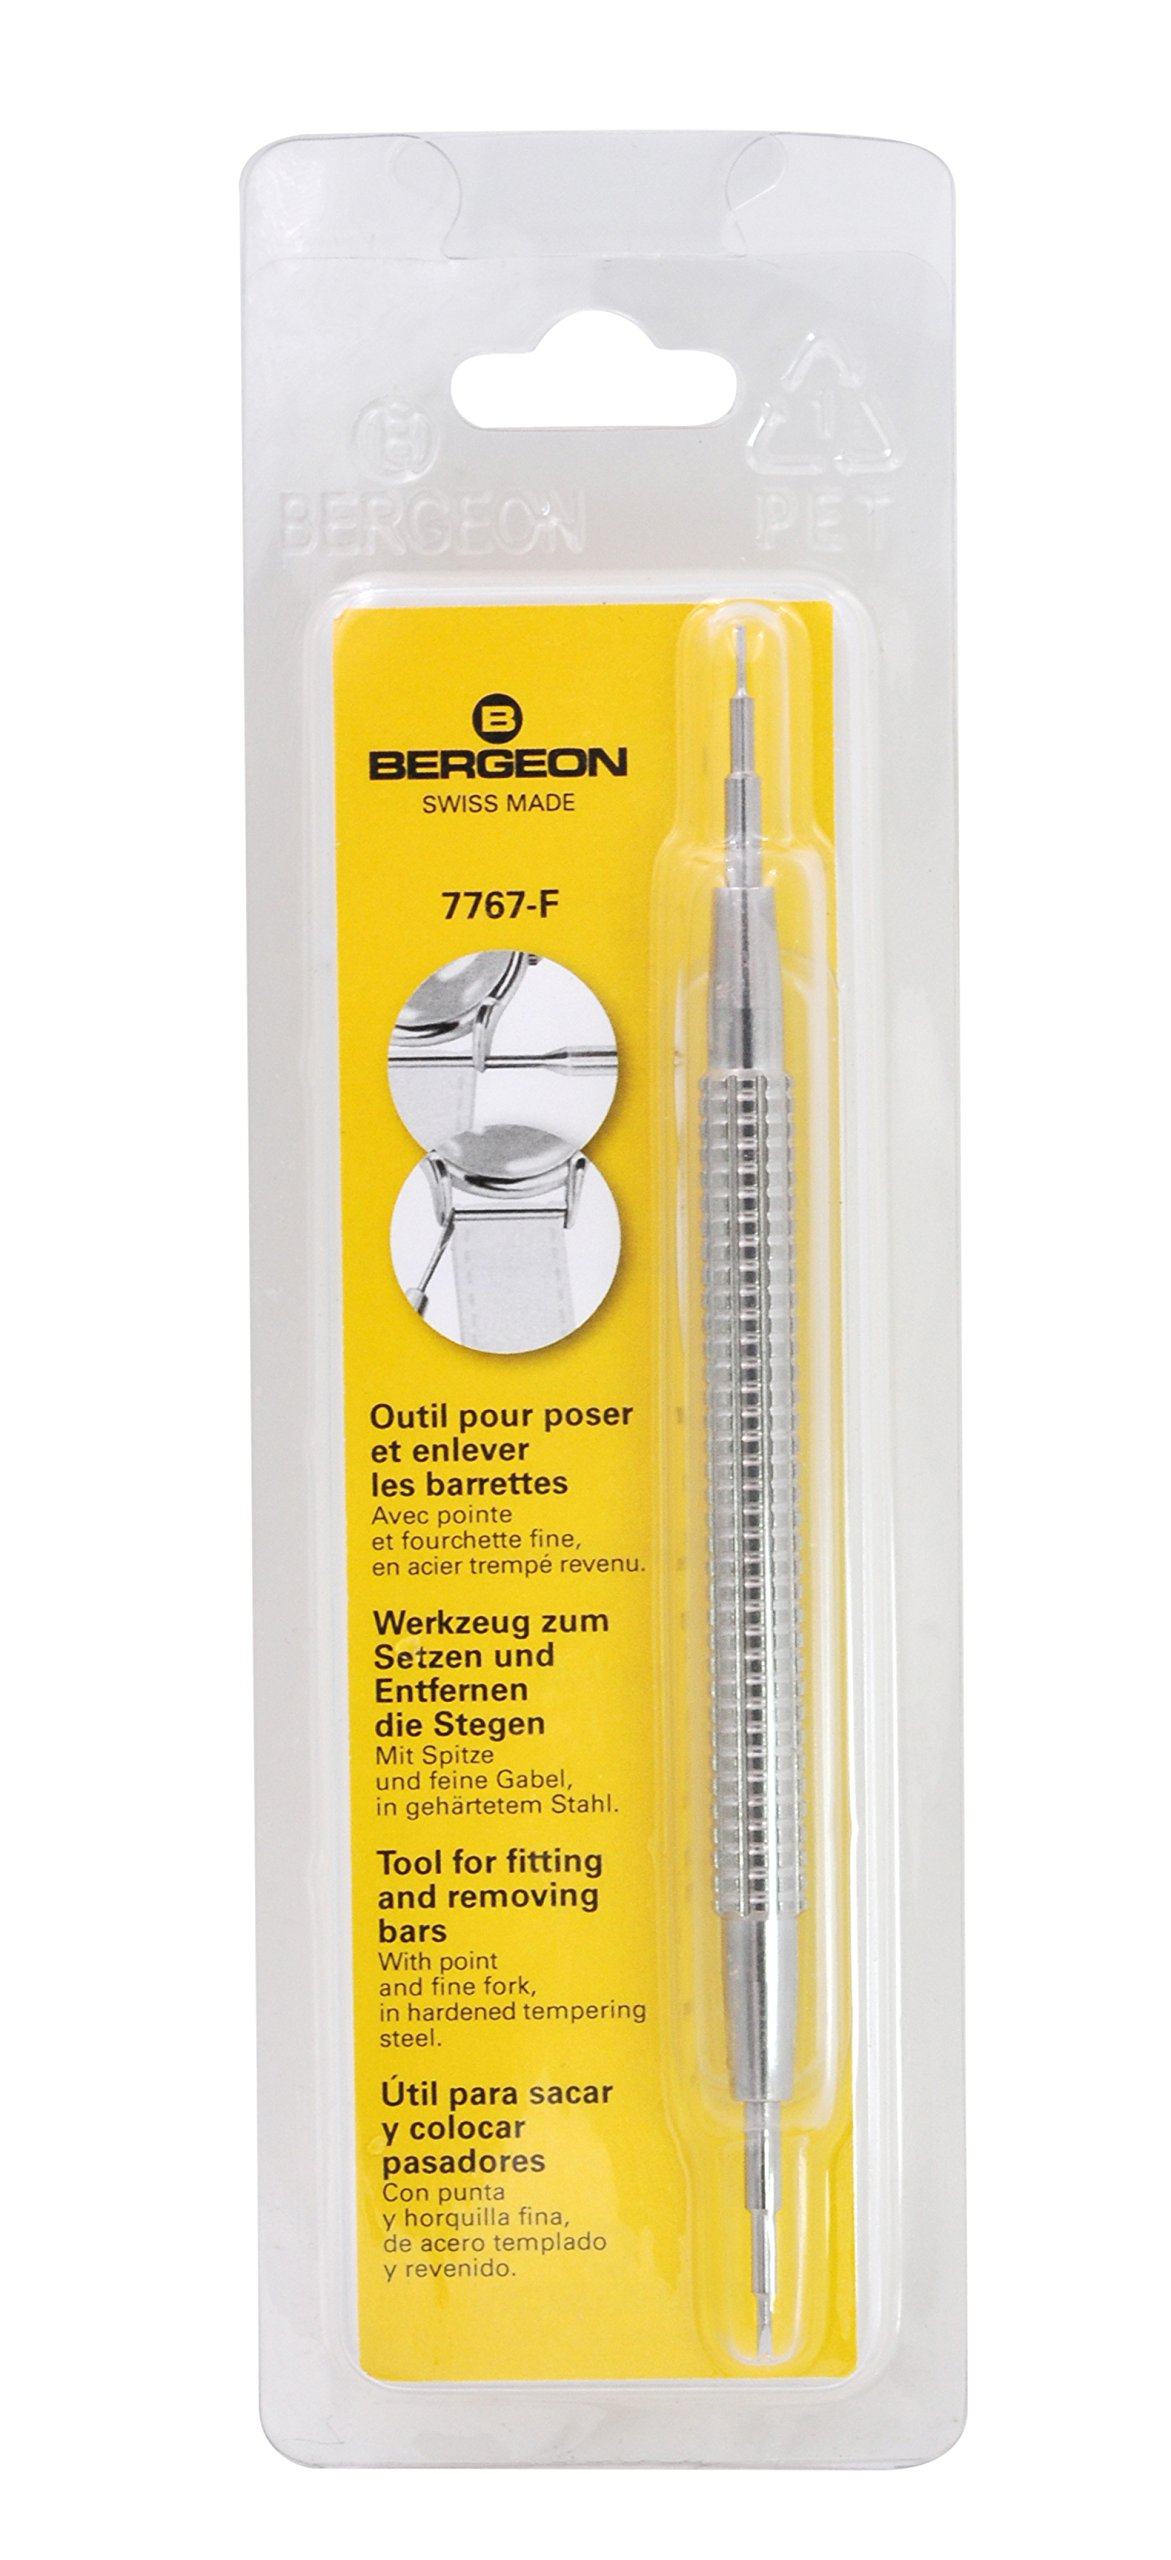 Bergeon 7767-F Watch Spring Bar Tool - Long Stainless Steel Handle with Replaceable Screw In Fine Tool End